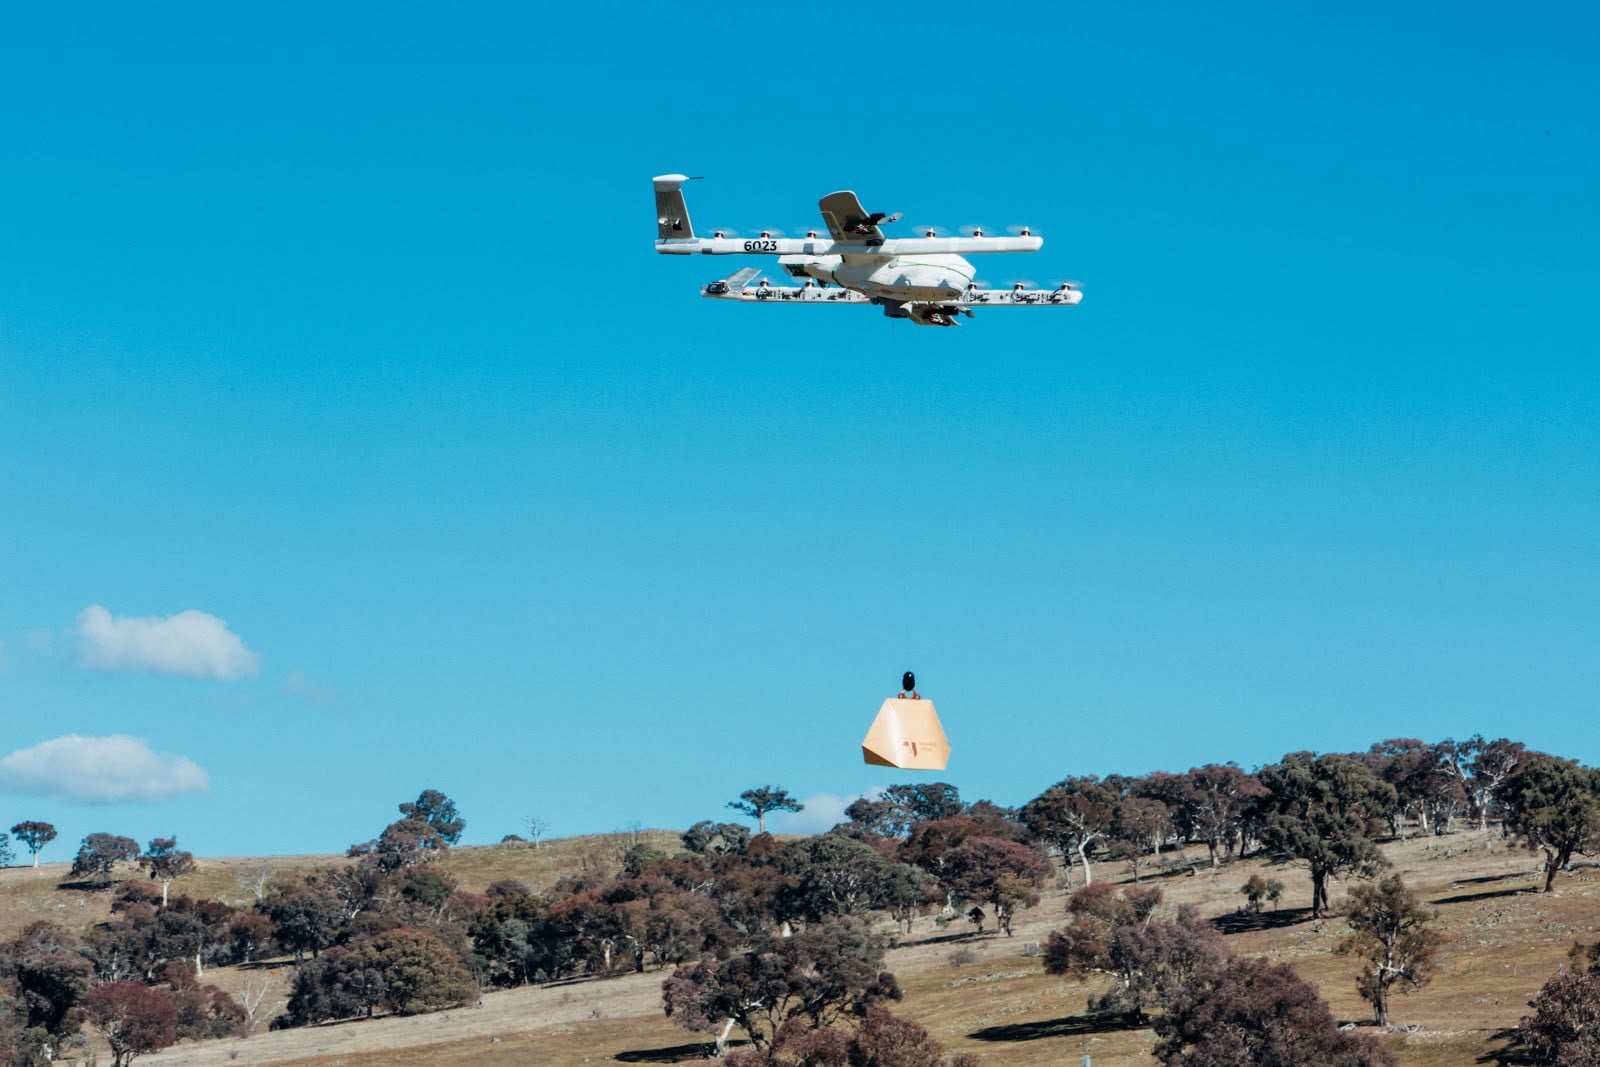 A Project Wing drone over Queanbeyan. Image: Project Wing